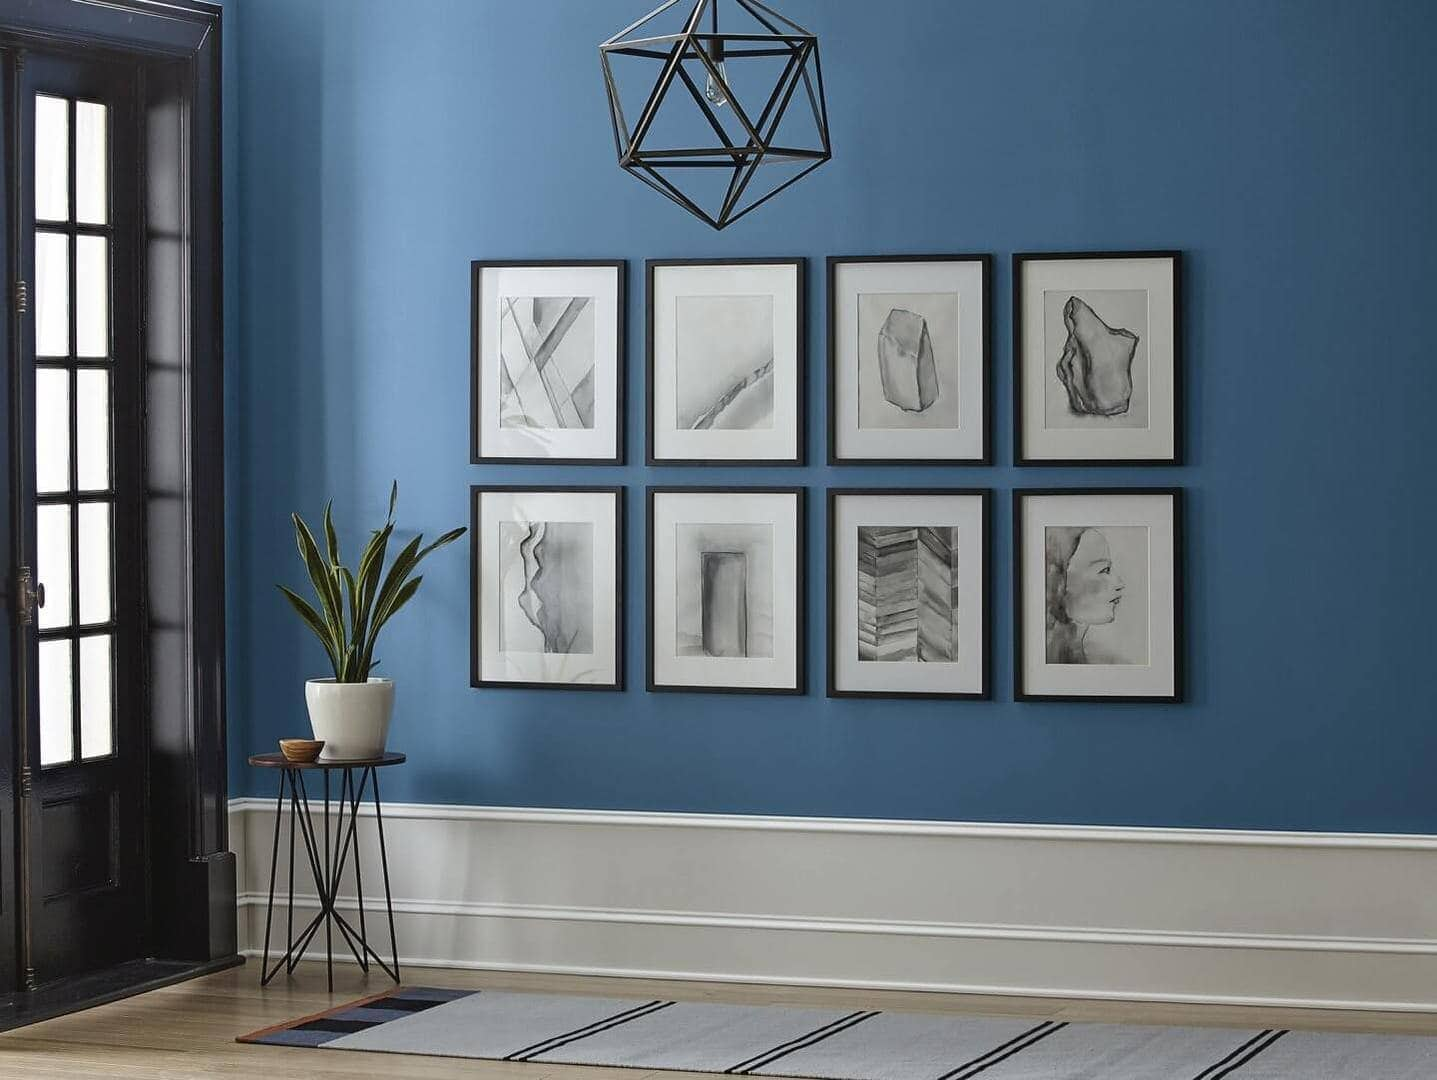 gallery wall ideas framed black and white photos on blue wall